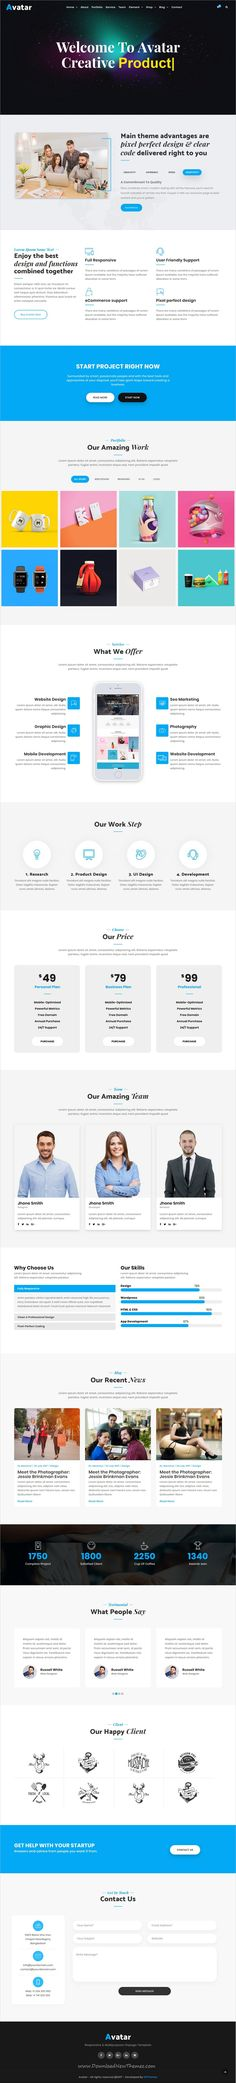 Avatar is clean and modern design responsive #bootstrap template for onepage #business agencies website with 7 niche homepage layouts download now..